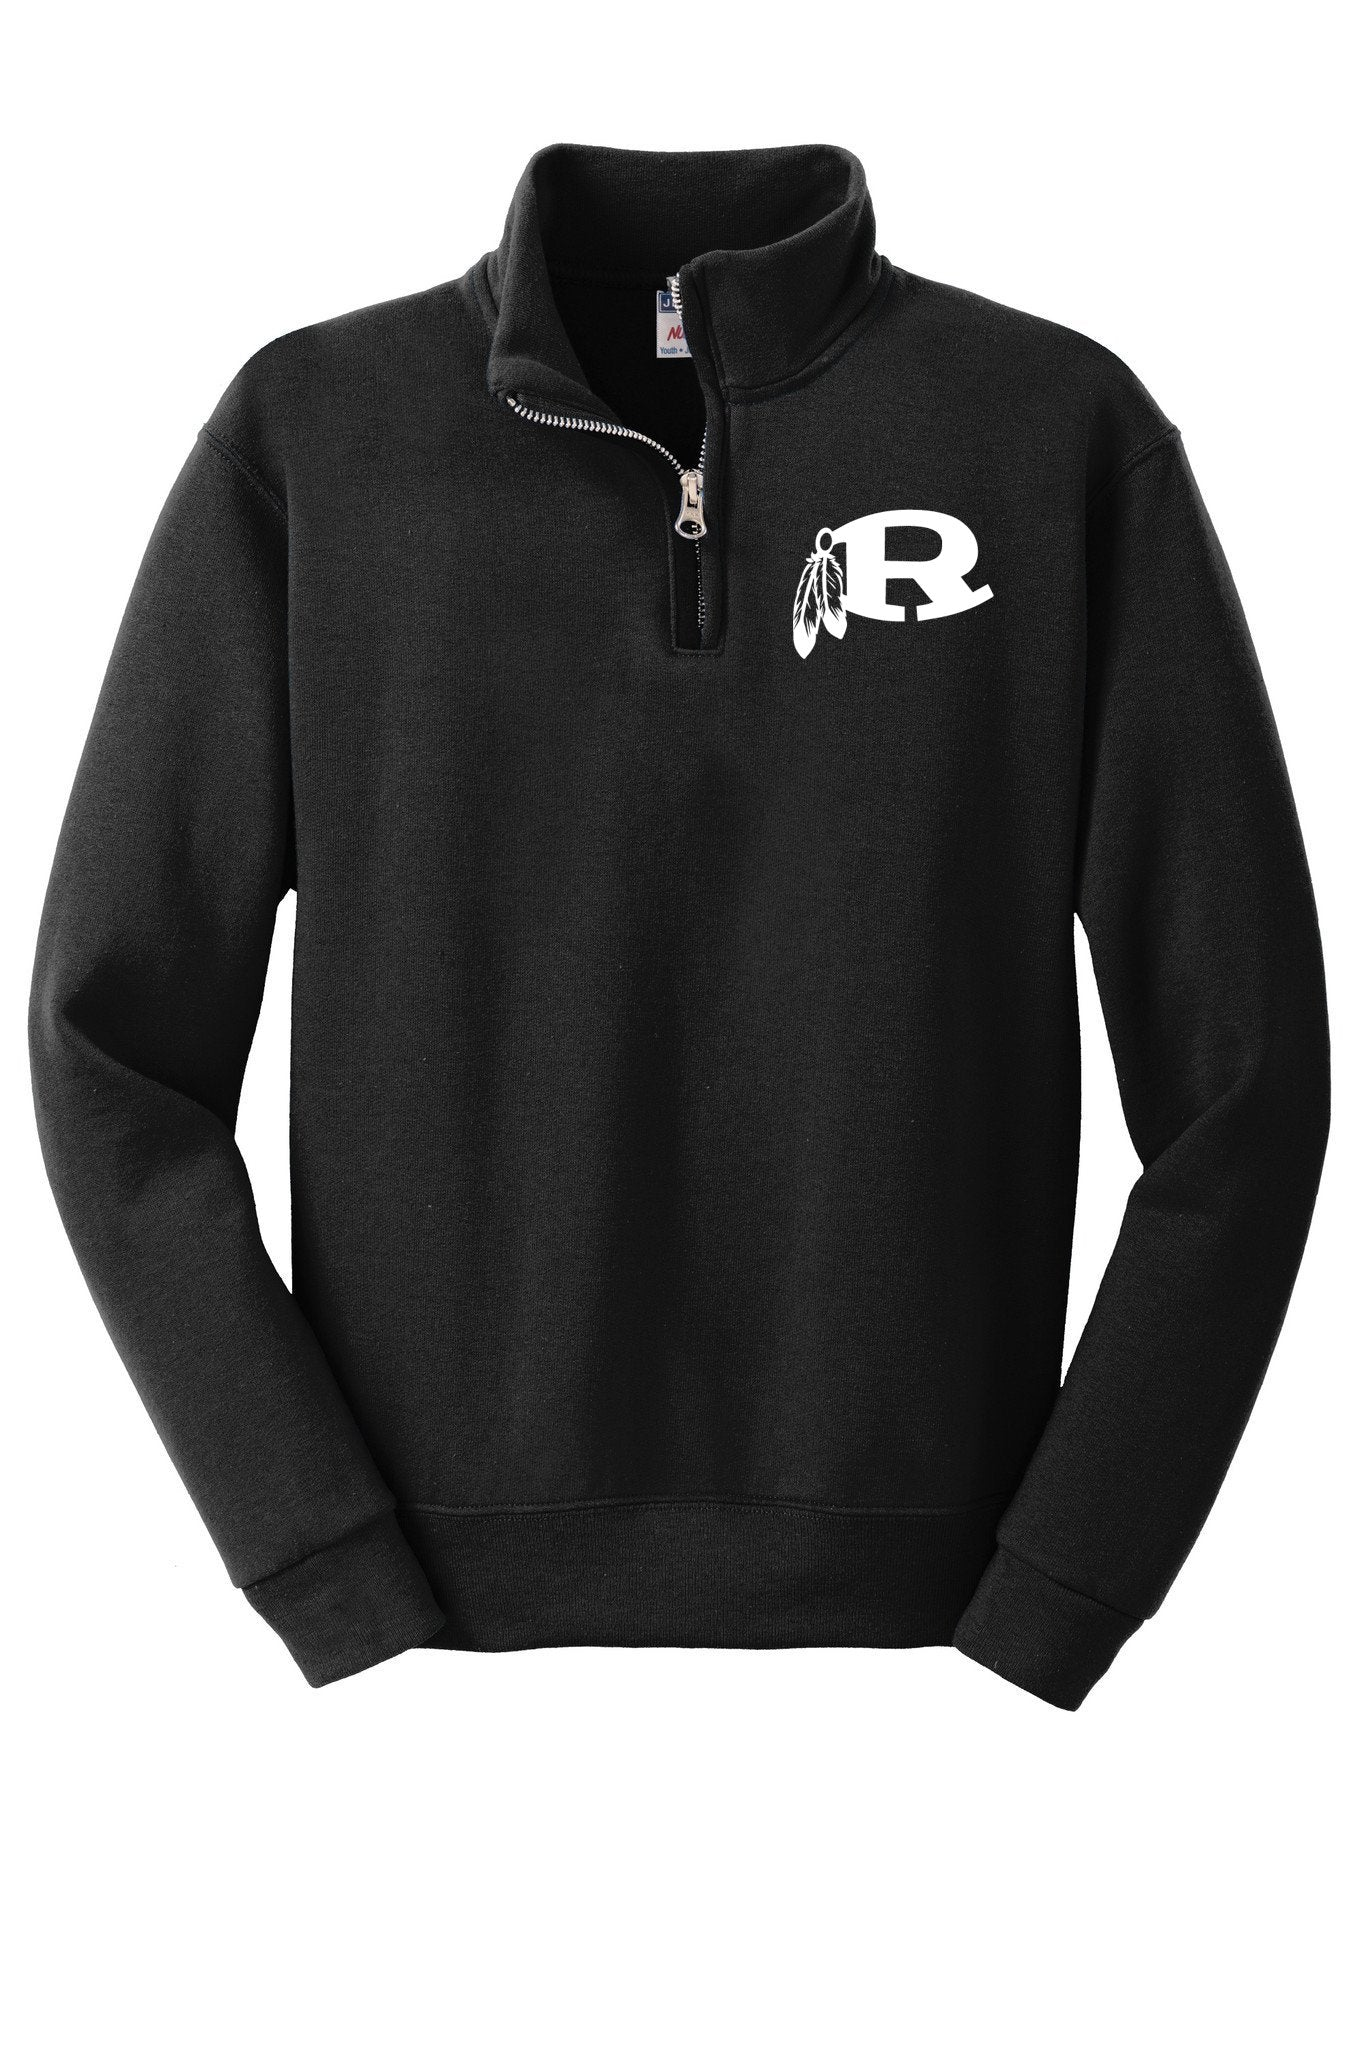 Rocking R Feather Youth 1/4 Zip